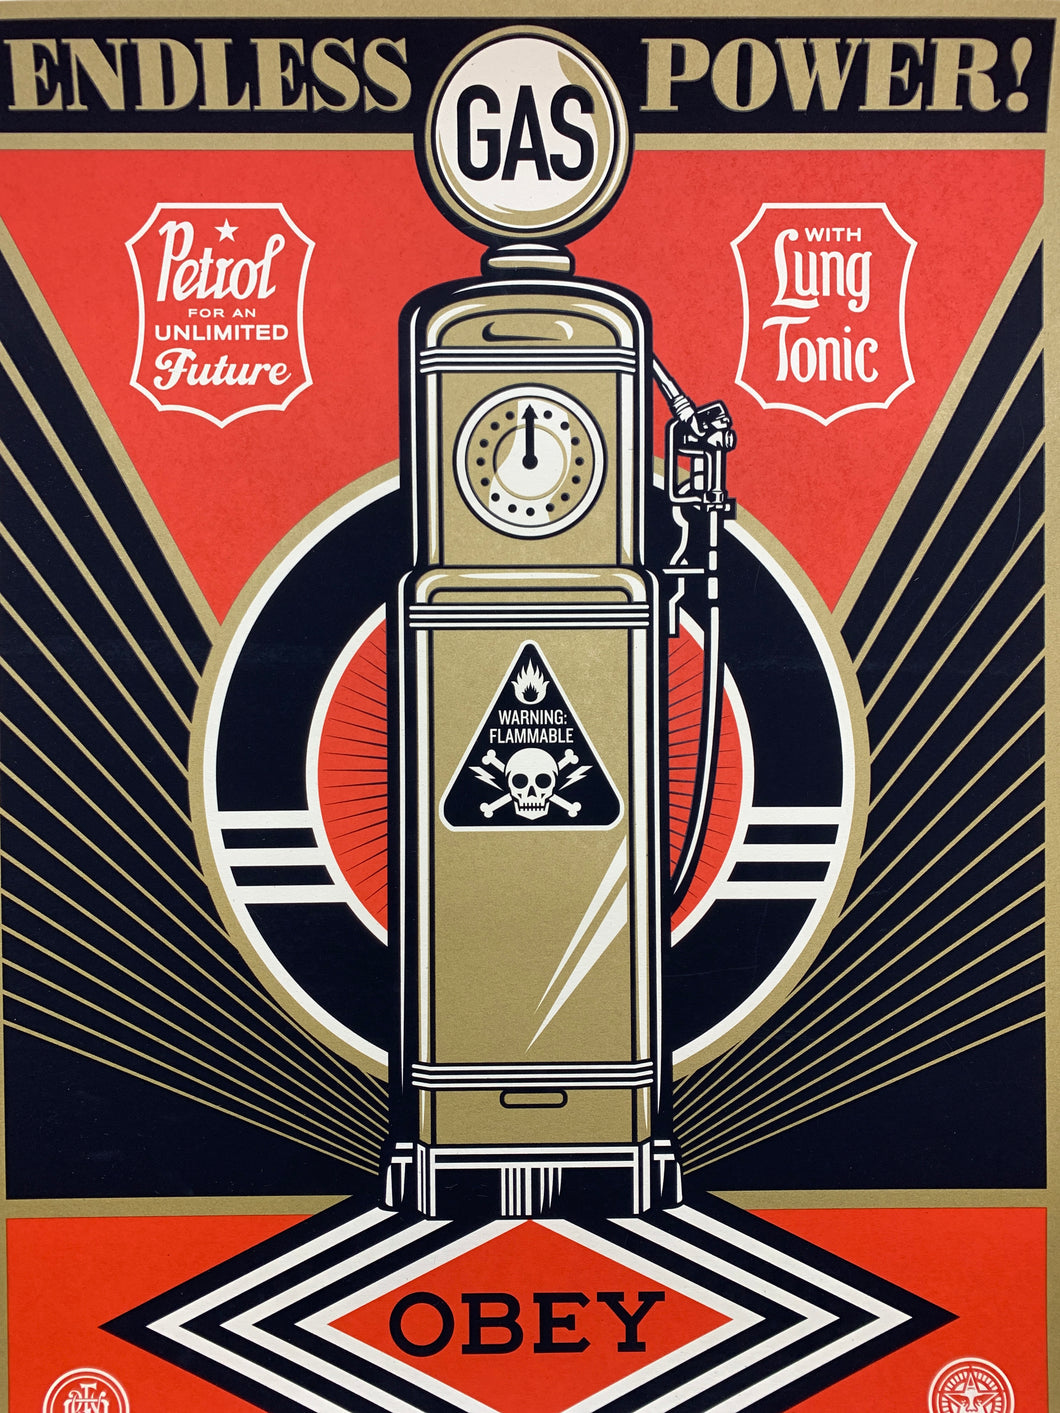 Shepard Fairey - Endless Power poster 2013 18x24 x/450